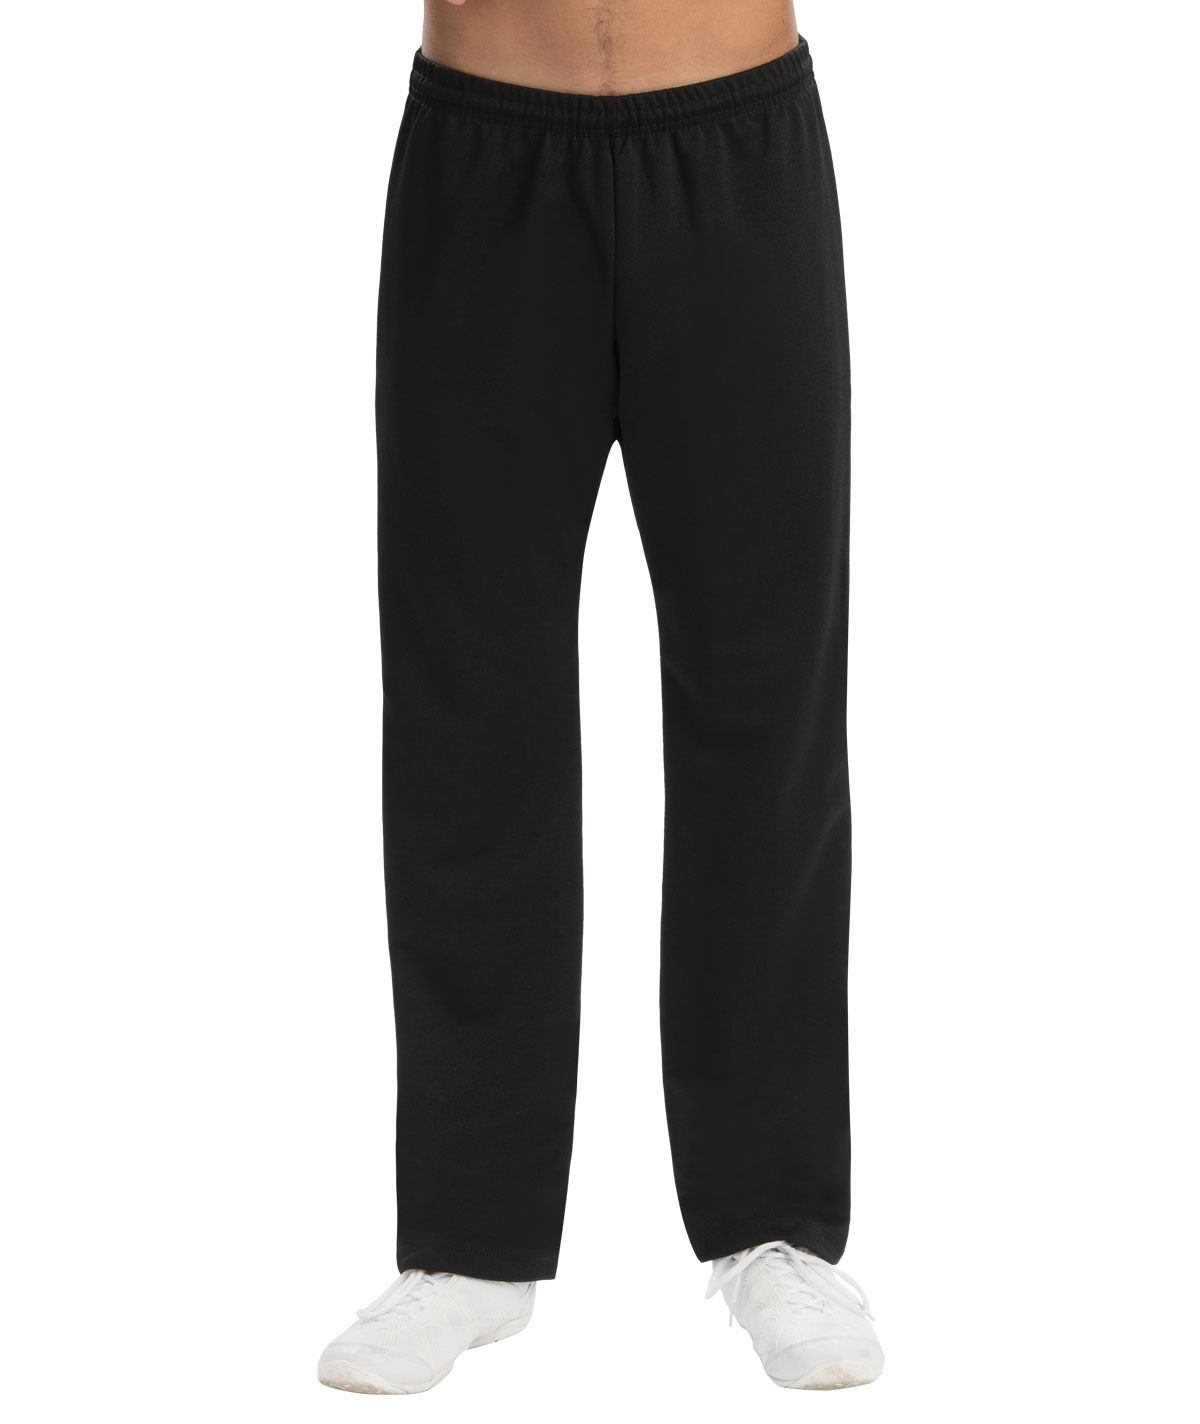 GK All Star Men's Basic Black Ponte Pants